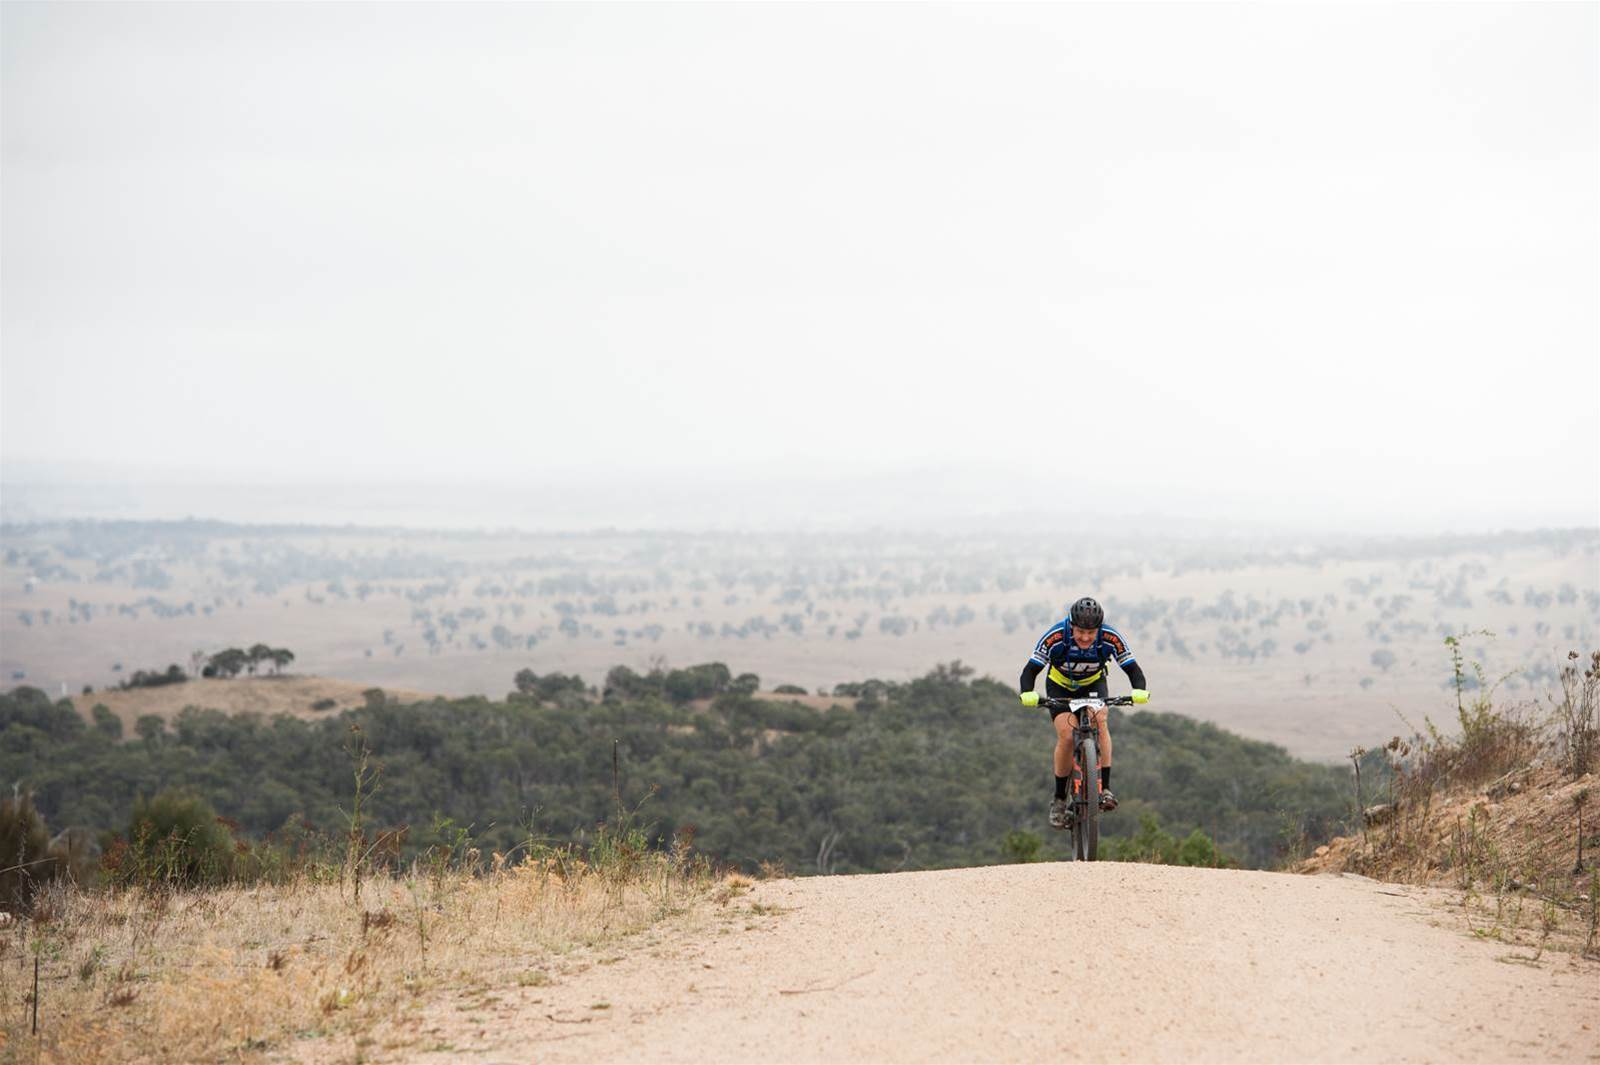 Stage Racing - How to prepare for multi-day events